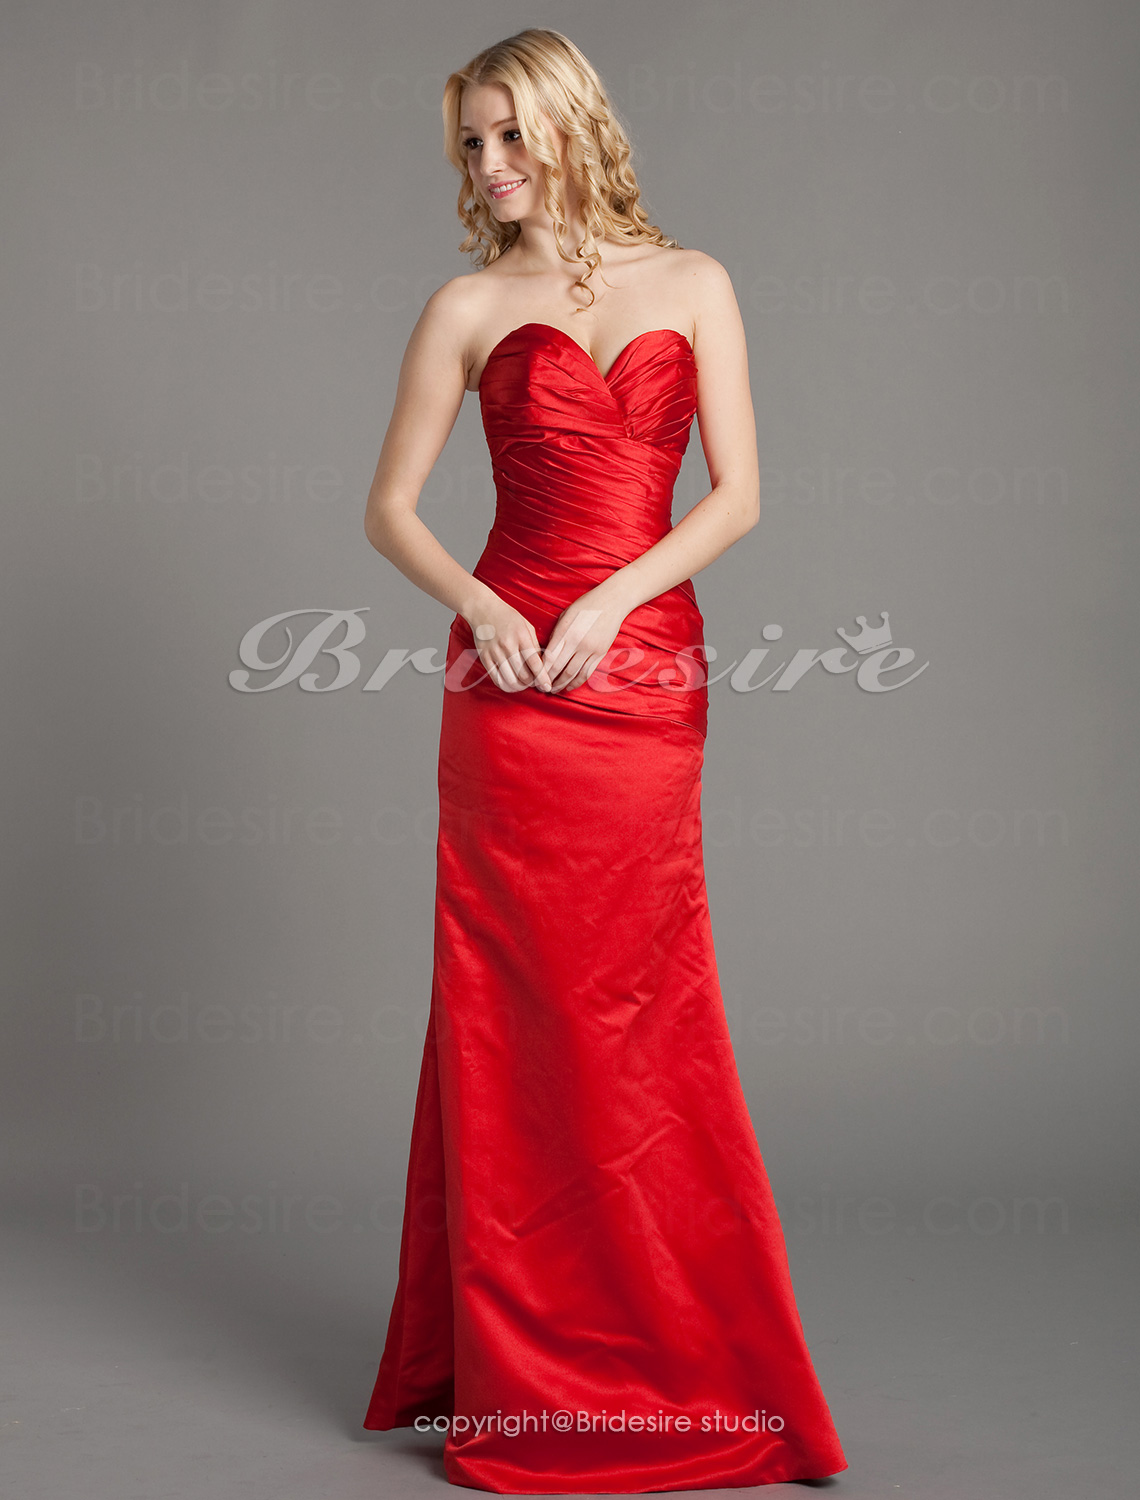 Trumpet/ Mermaid Satin Floor-length Sweetheart Bridesmaid Dress